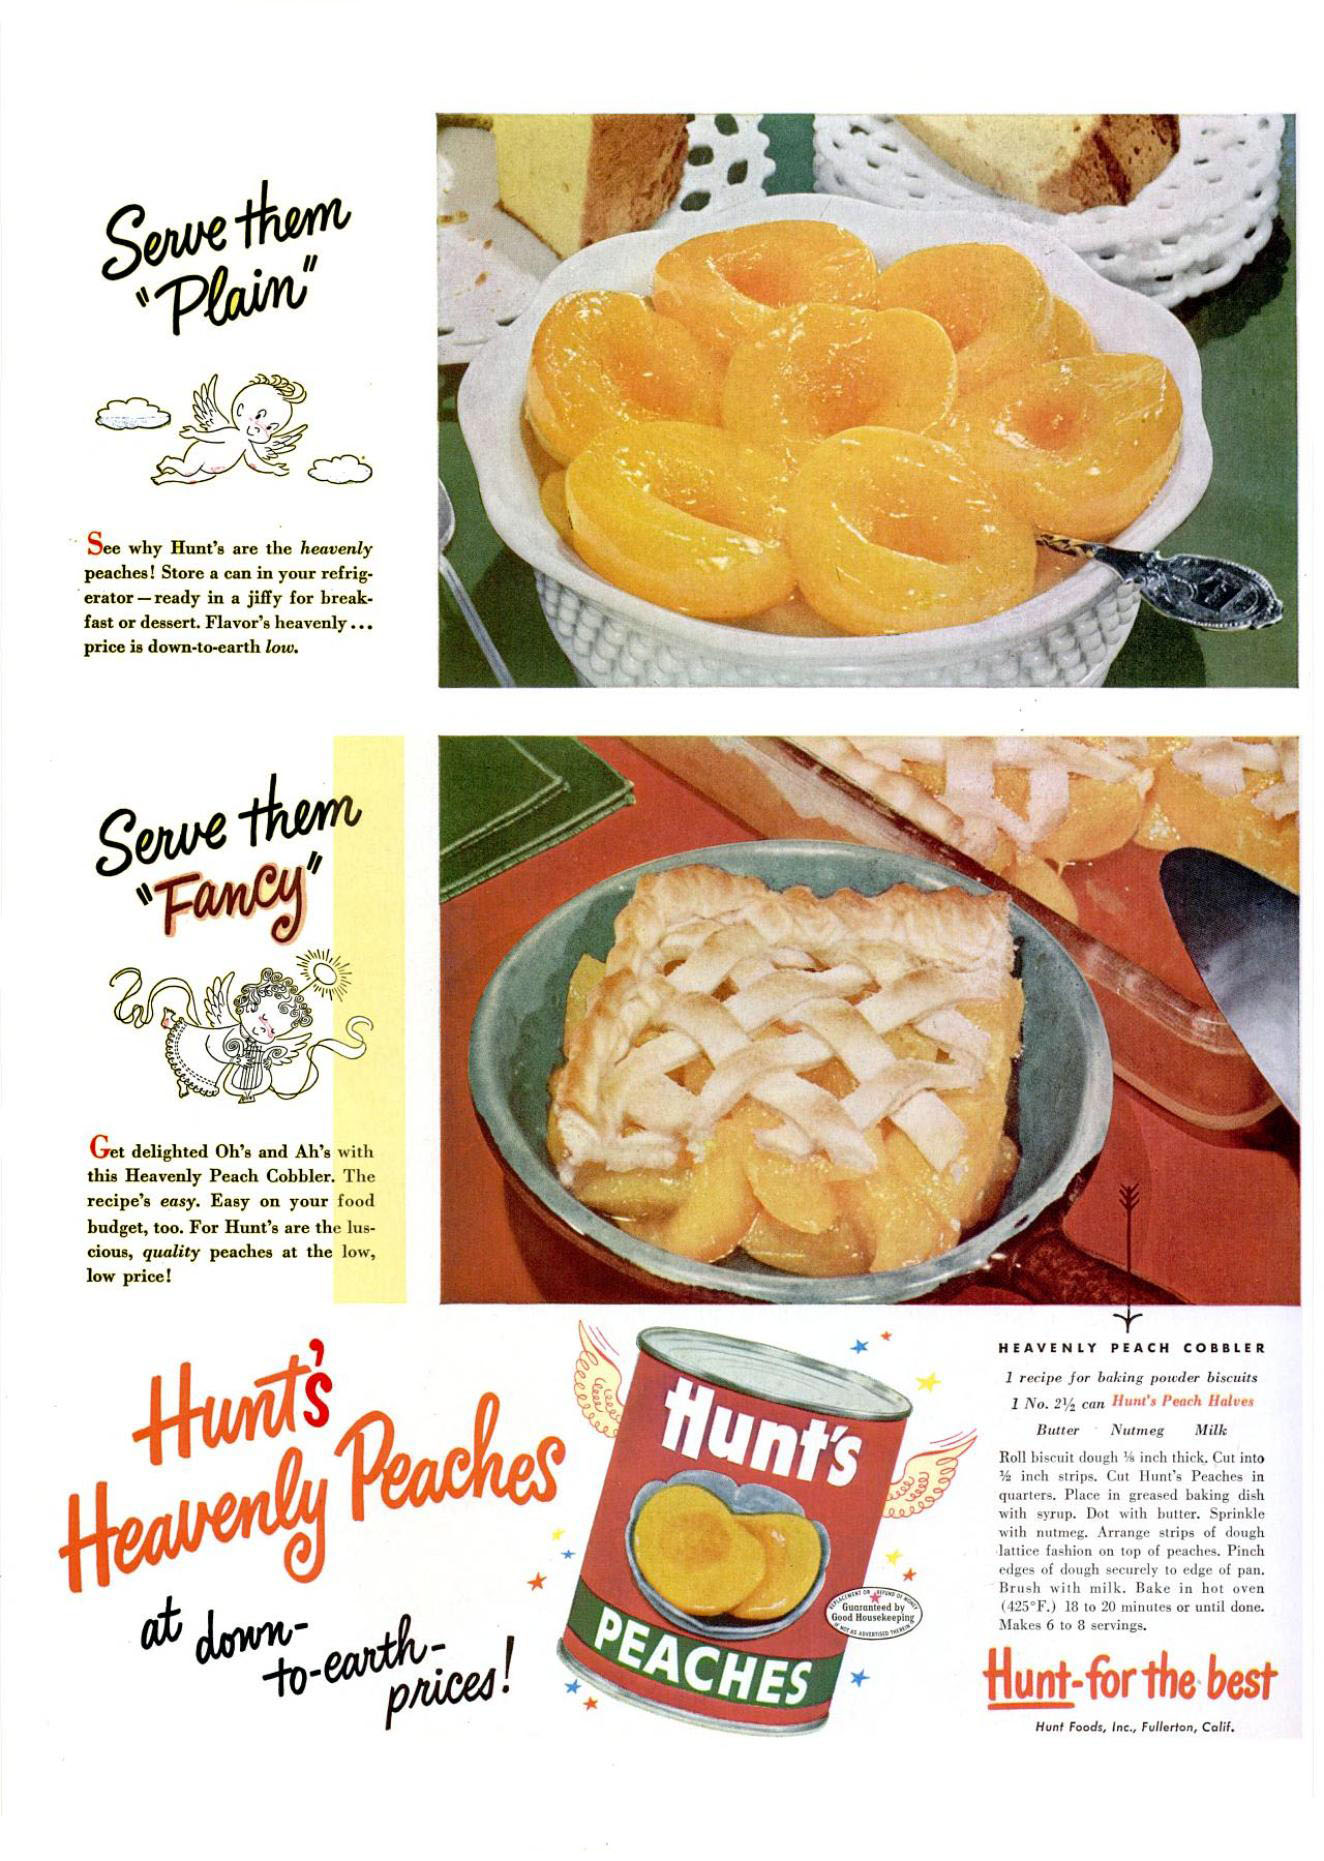 Hunt's Heavenly Peach Cobbler recipe from Life - March 17, 1952